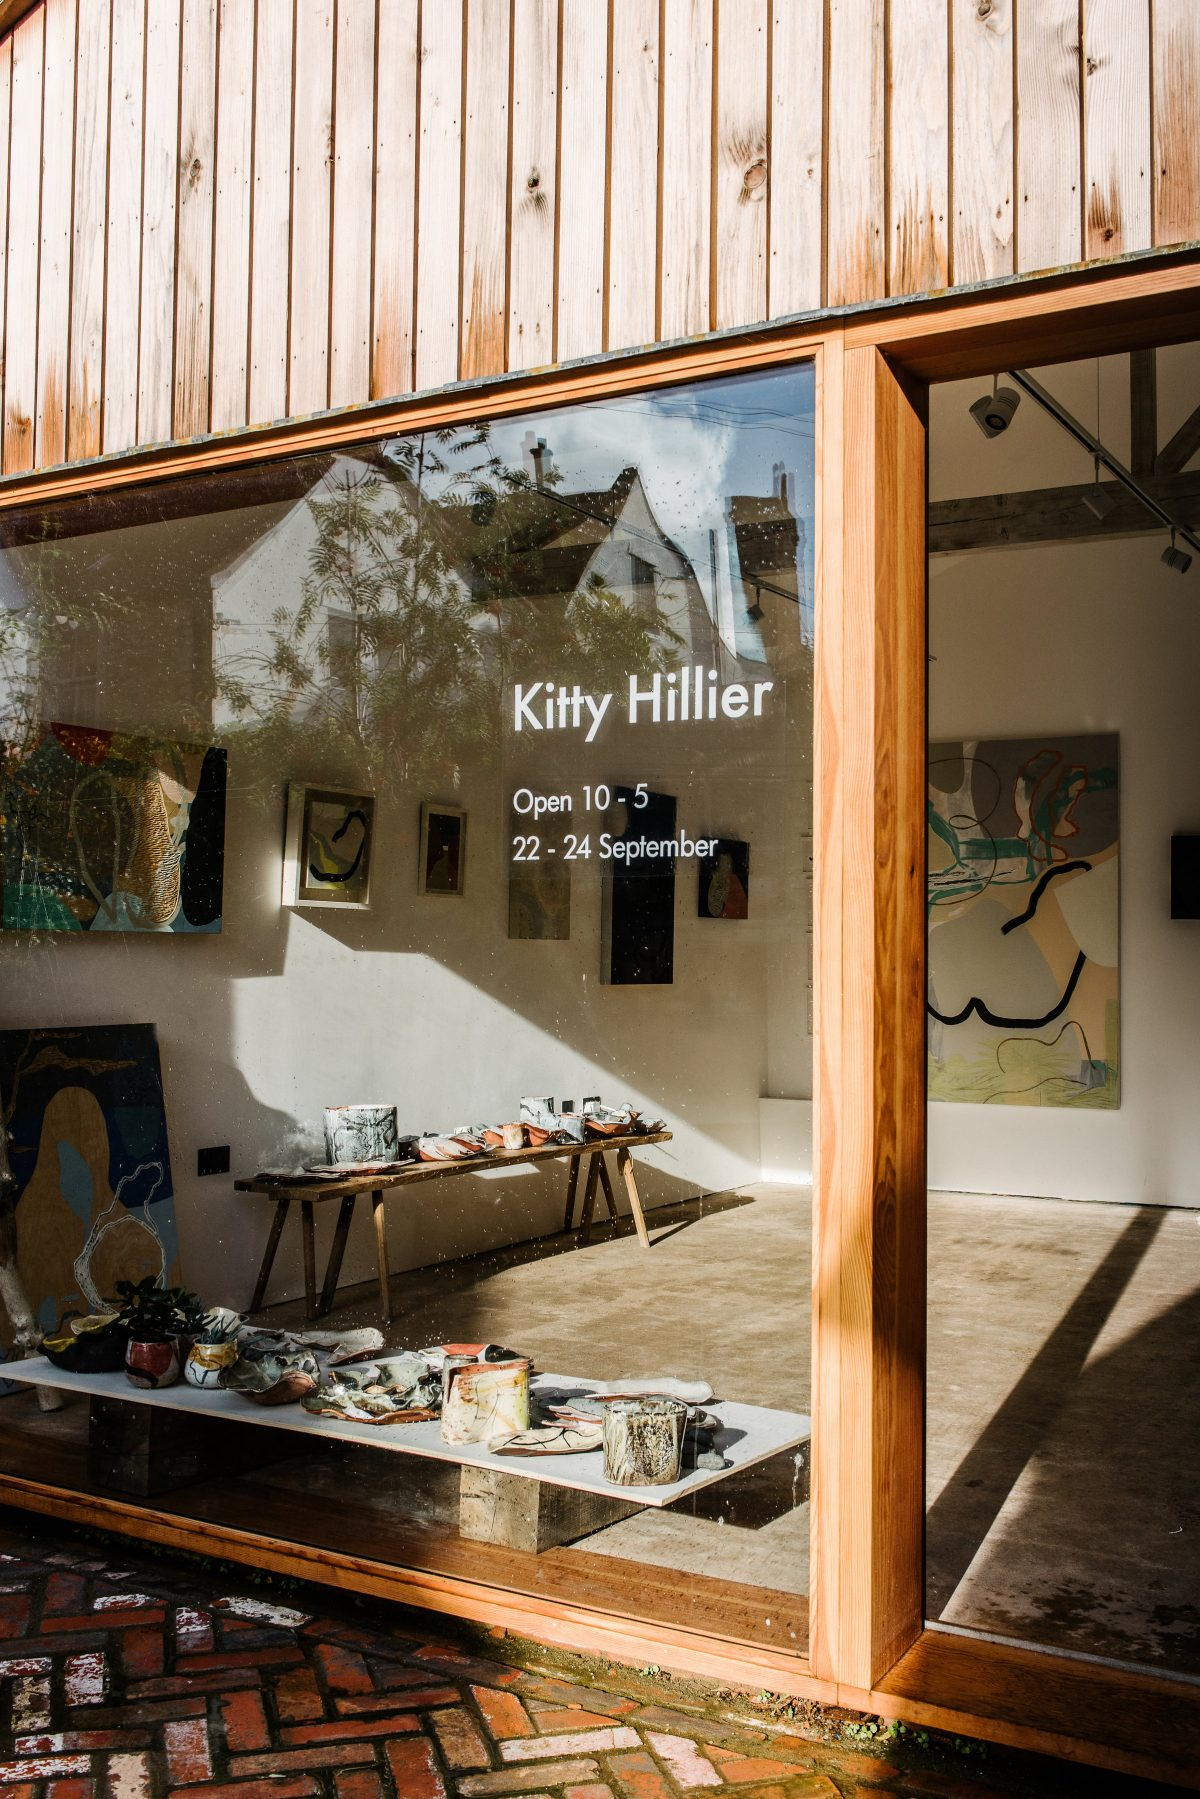 Kitty Hillier paintings ceramics At The Space Caro, Bruton